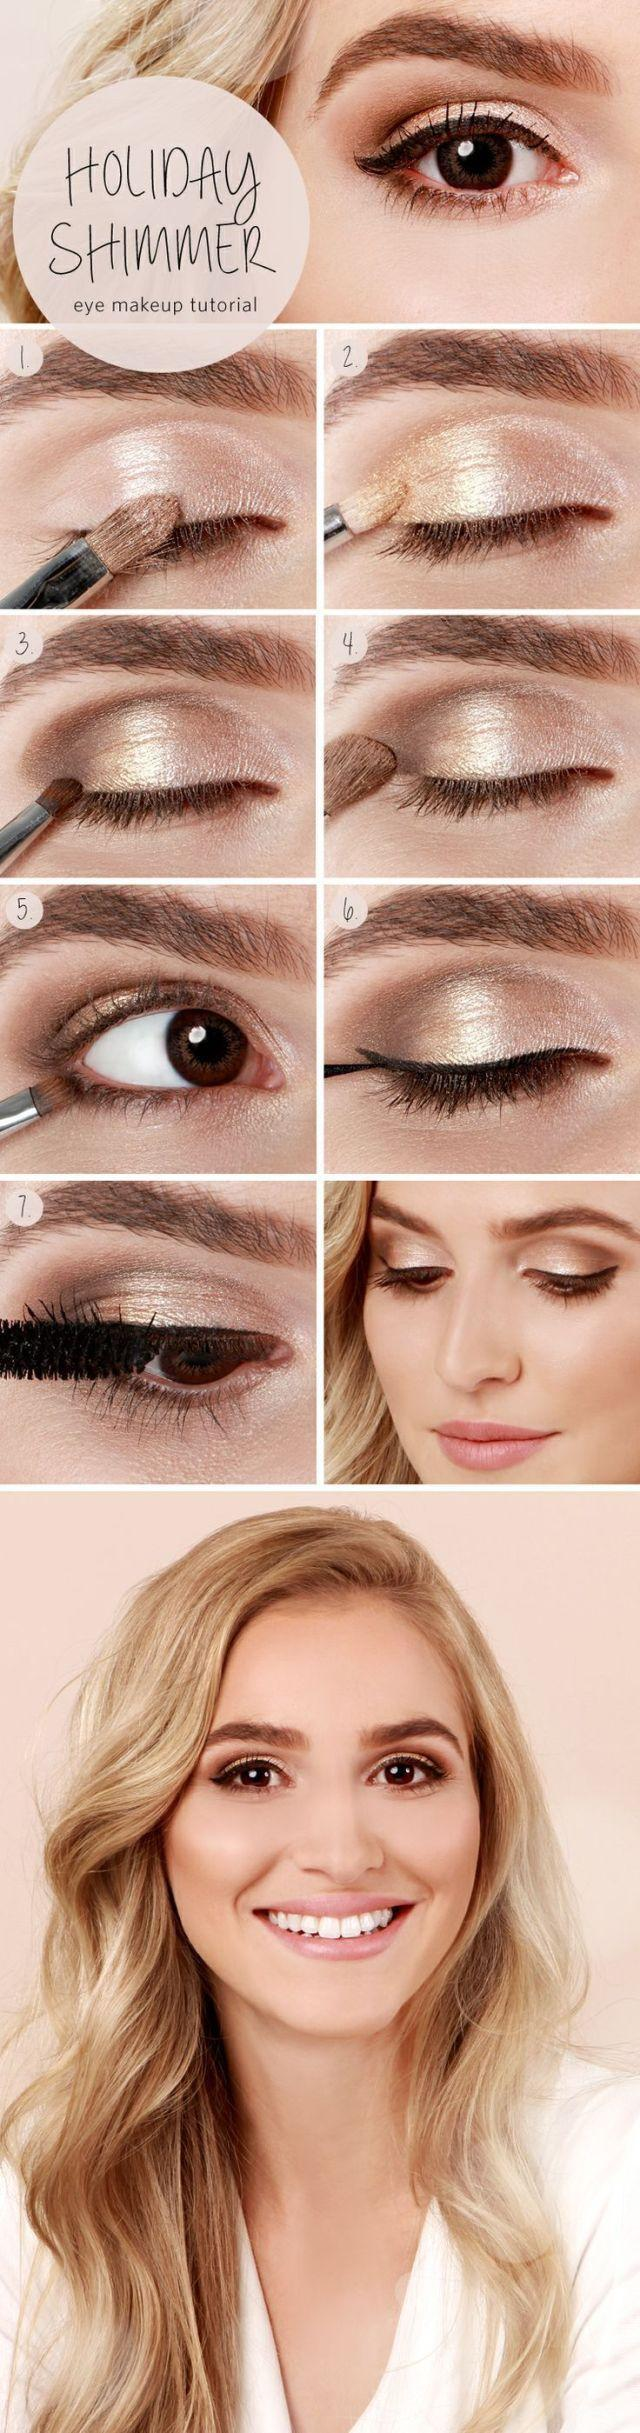 Mariage - 10 Eye Makeup Tutorials From Pinterest To Turn You Into A Beauty PRO